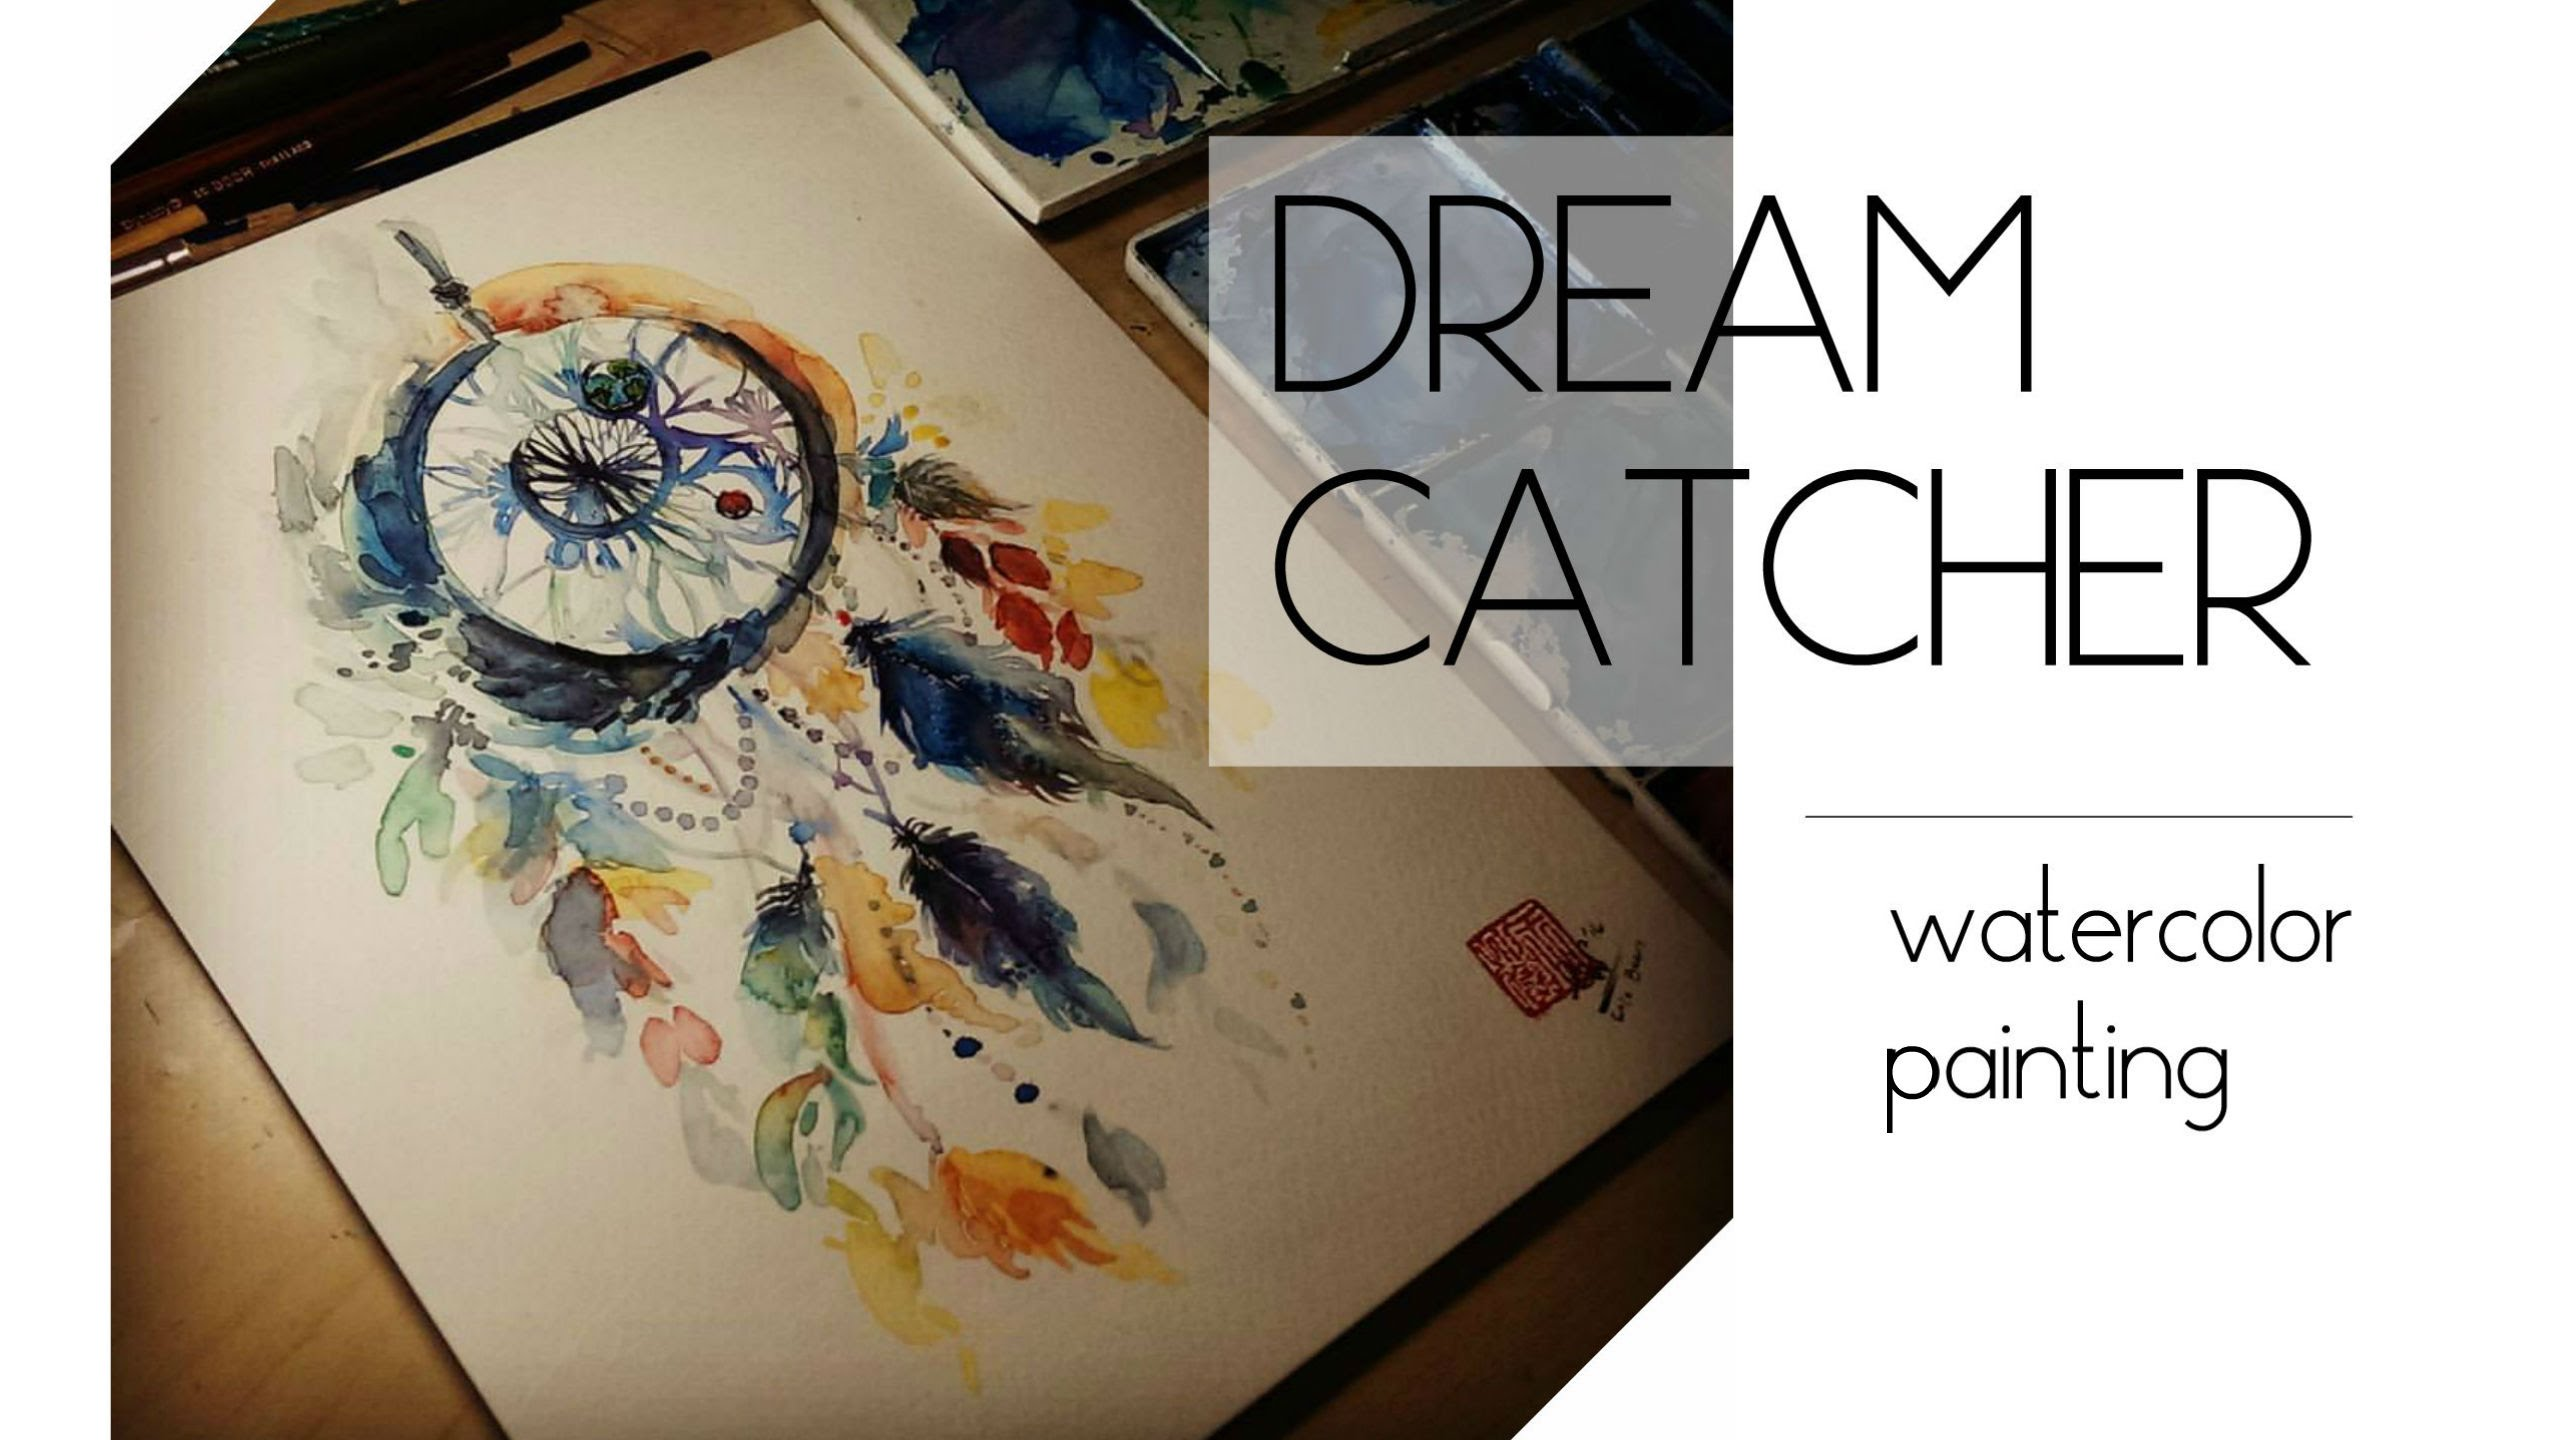 2560x1440 Painting A Dreamcatcher With Watercolor